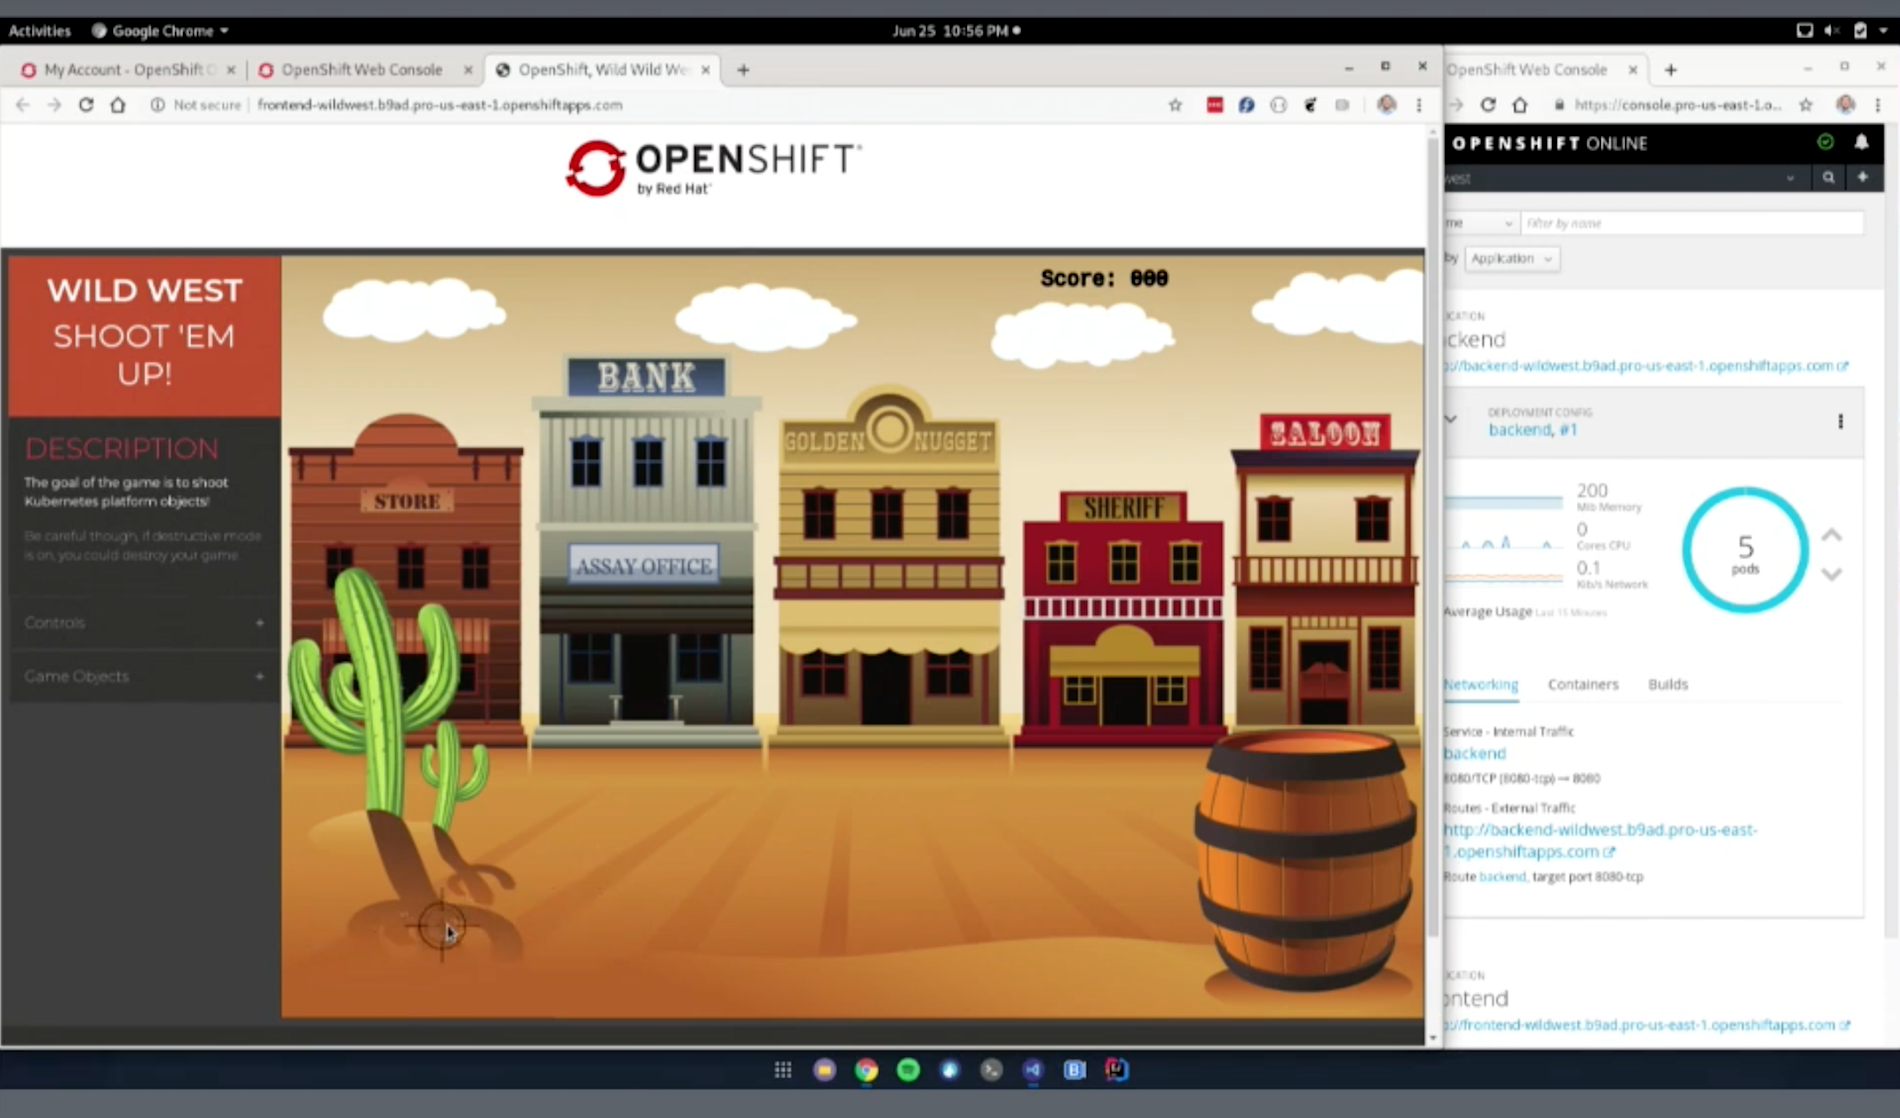 Kubernetes: The retro-style, Wild West video game